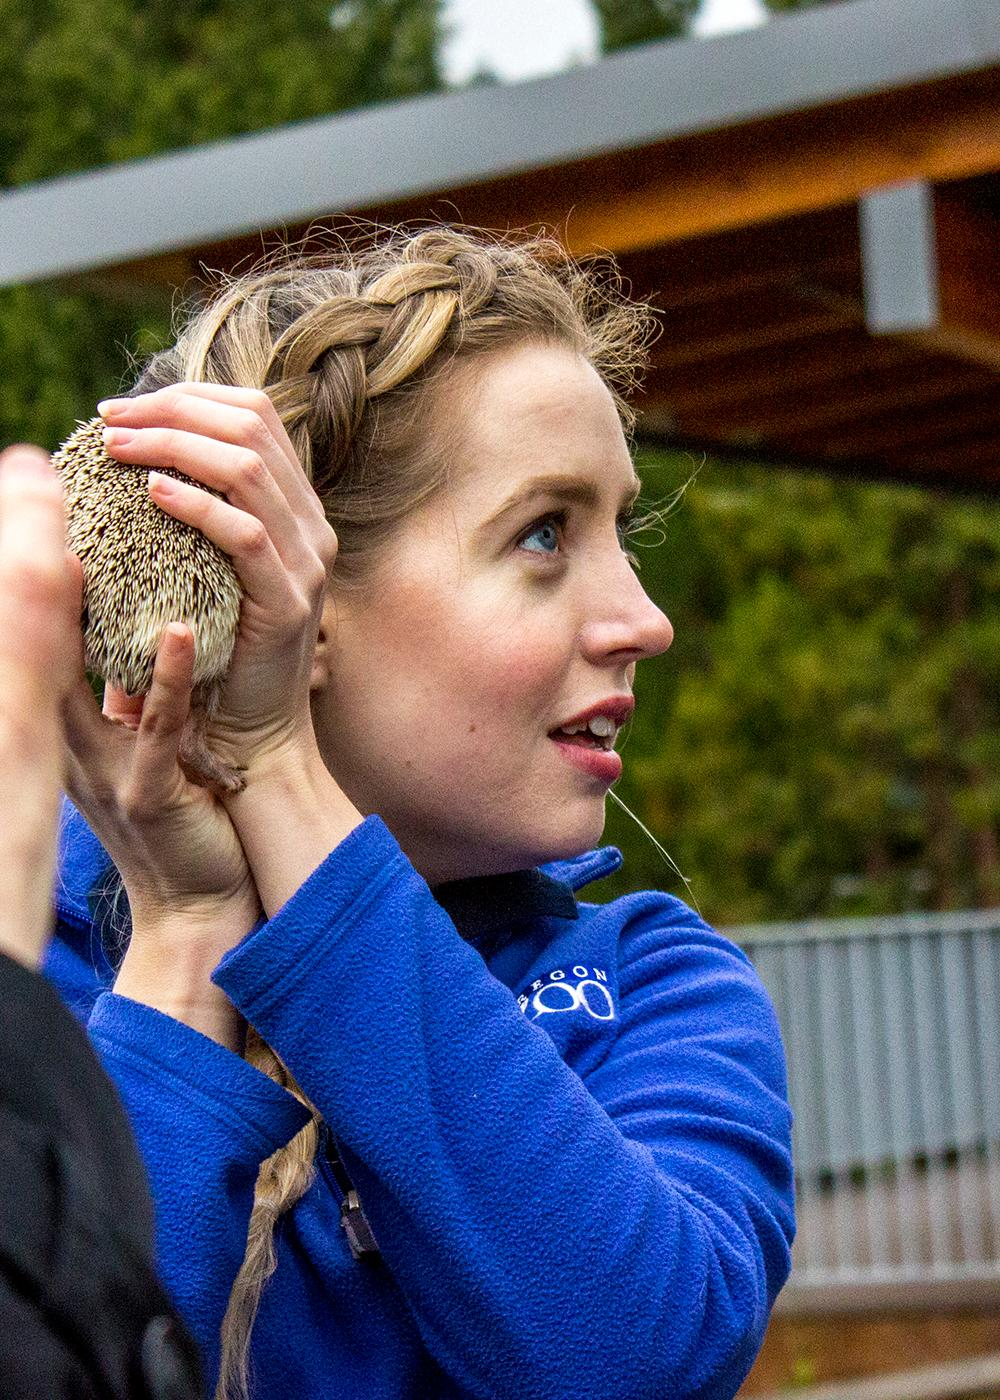 "Fufu the hedgehog made her weather prediction on what the Oregon Zoo calls ""Hedgehog Day 2018."" Most observe Feb. 2 as ""Groundhog Day,"" but the zoo instead brings out their trusty hedgehog named Fufu to look for her shadow. Like the groundhog, if Fufu sees her shadow, there will be six more weeks of winter. If not, there will be an early summer. This year, Fufu said spring is on the way after not seeing her shadow. Photo by Amanda Butt"